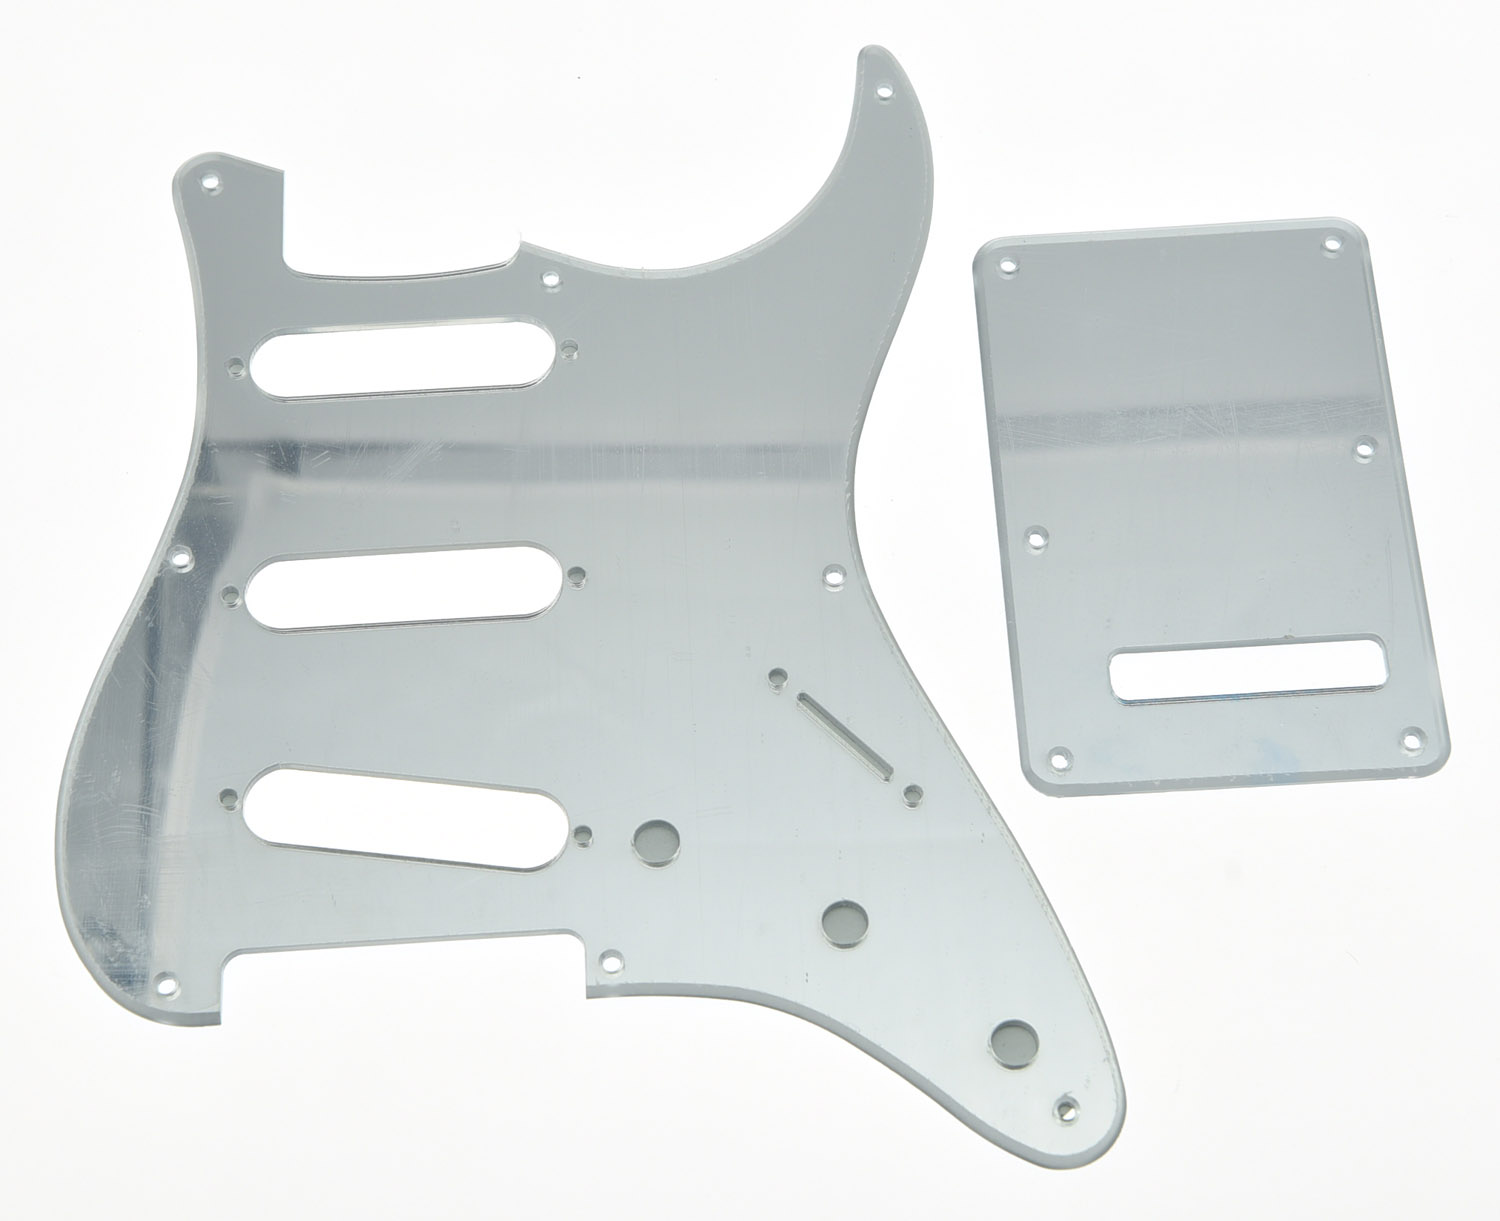 KAISH Silver Mirror Vintage ST 8 Hole Guitar Pickguard Back Plate Set for USA ST silver mirror hss st strat style guitar pickguard scratch set mirror pickguard mirror back plate chrome pickguard screws hot